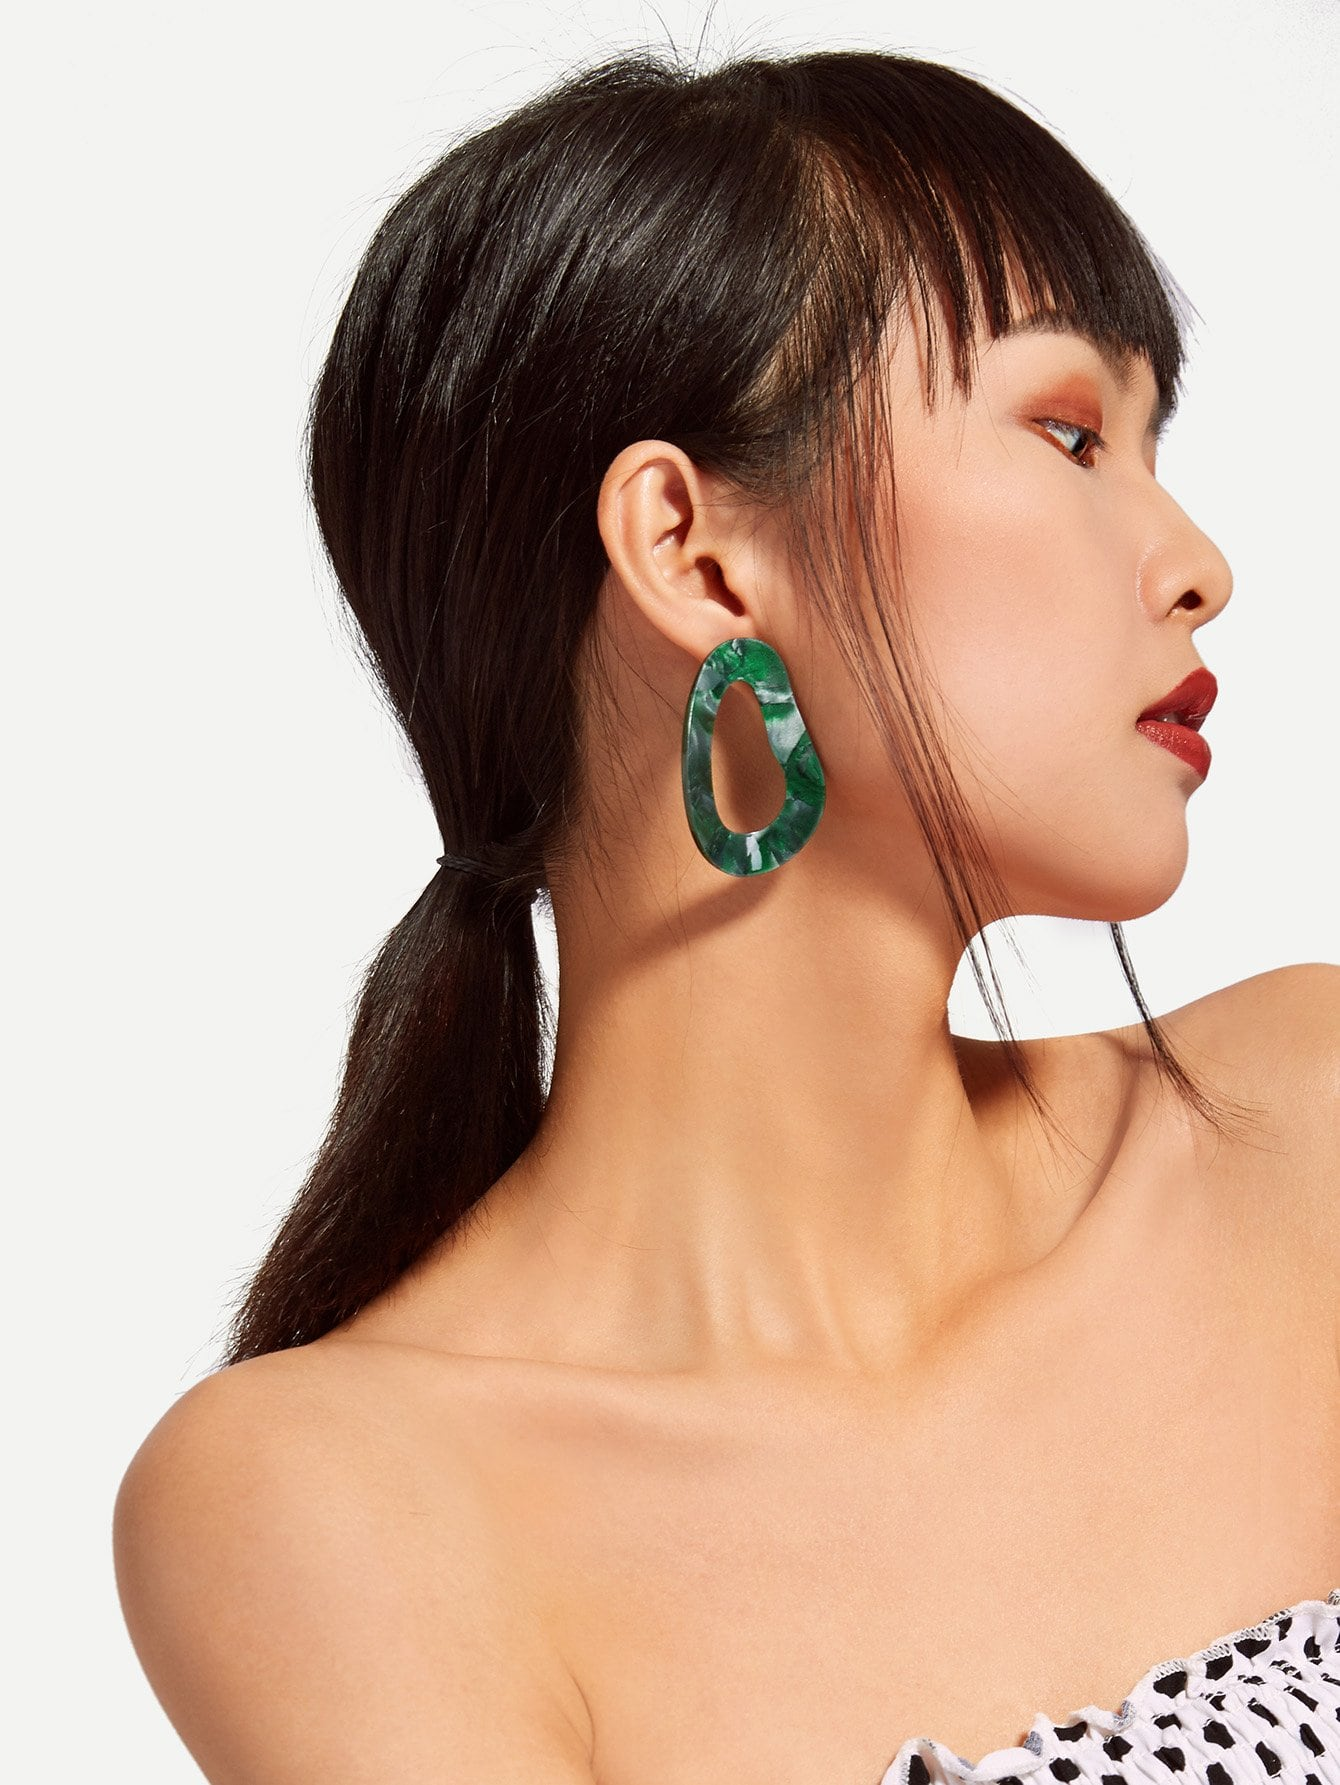 Irregular Shaped Design Drop Earrings hollow water drop shaped drop earrings